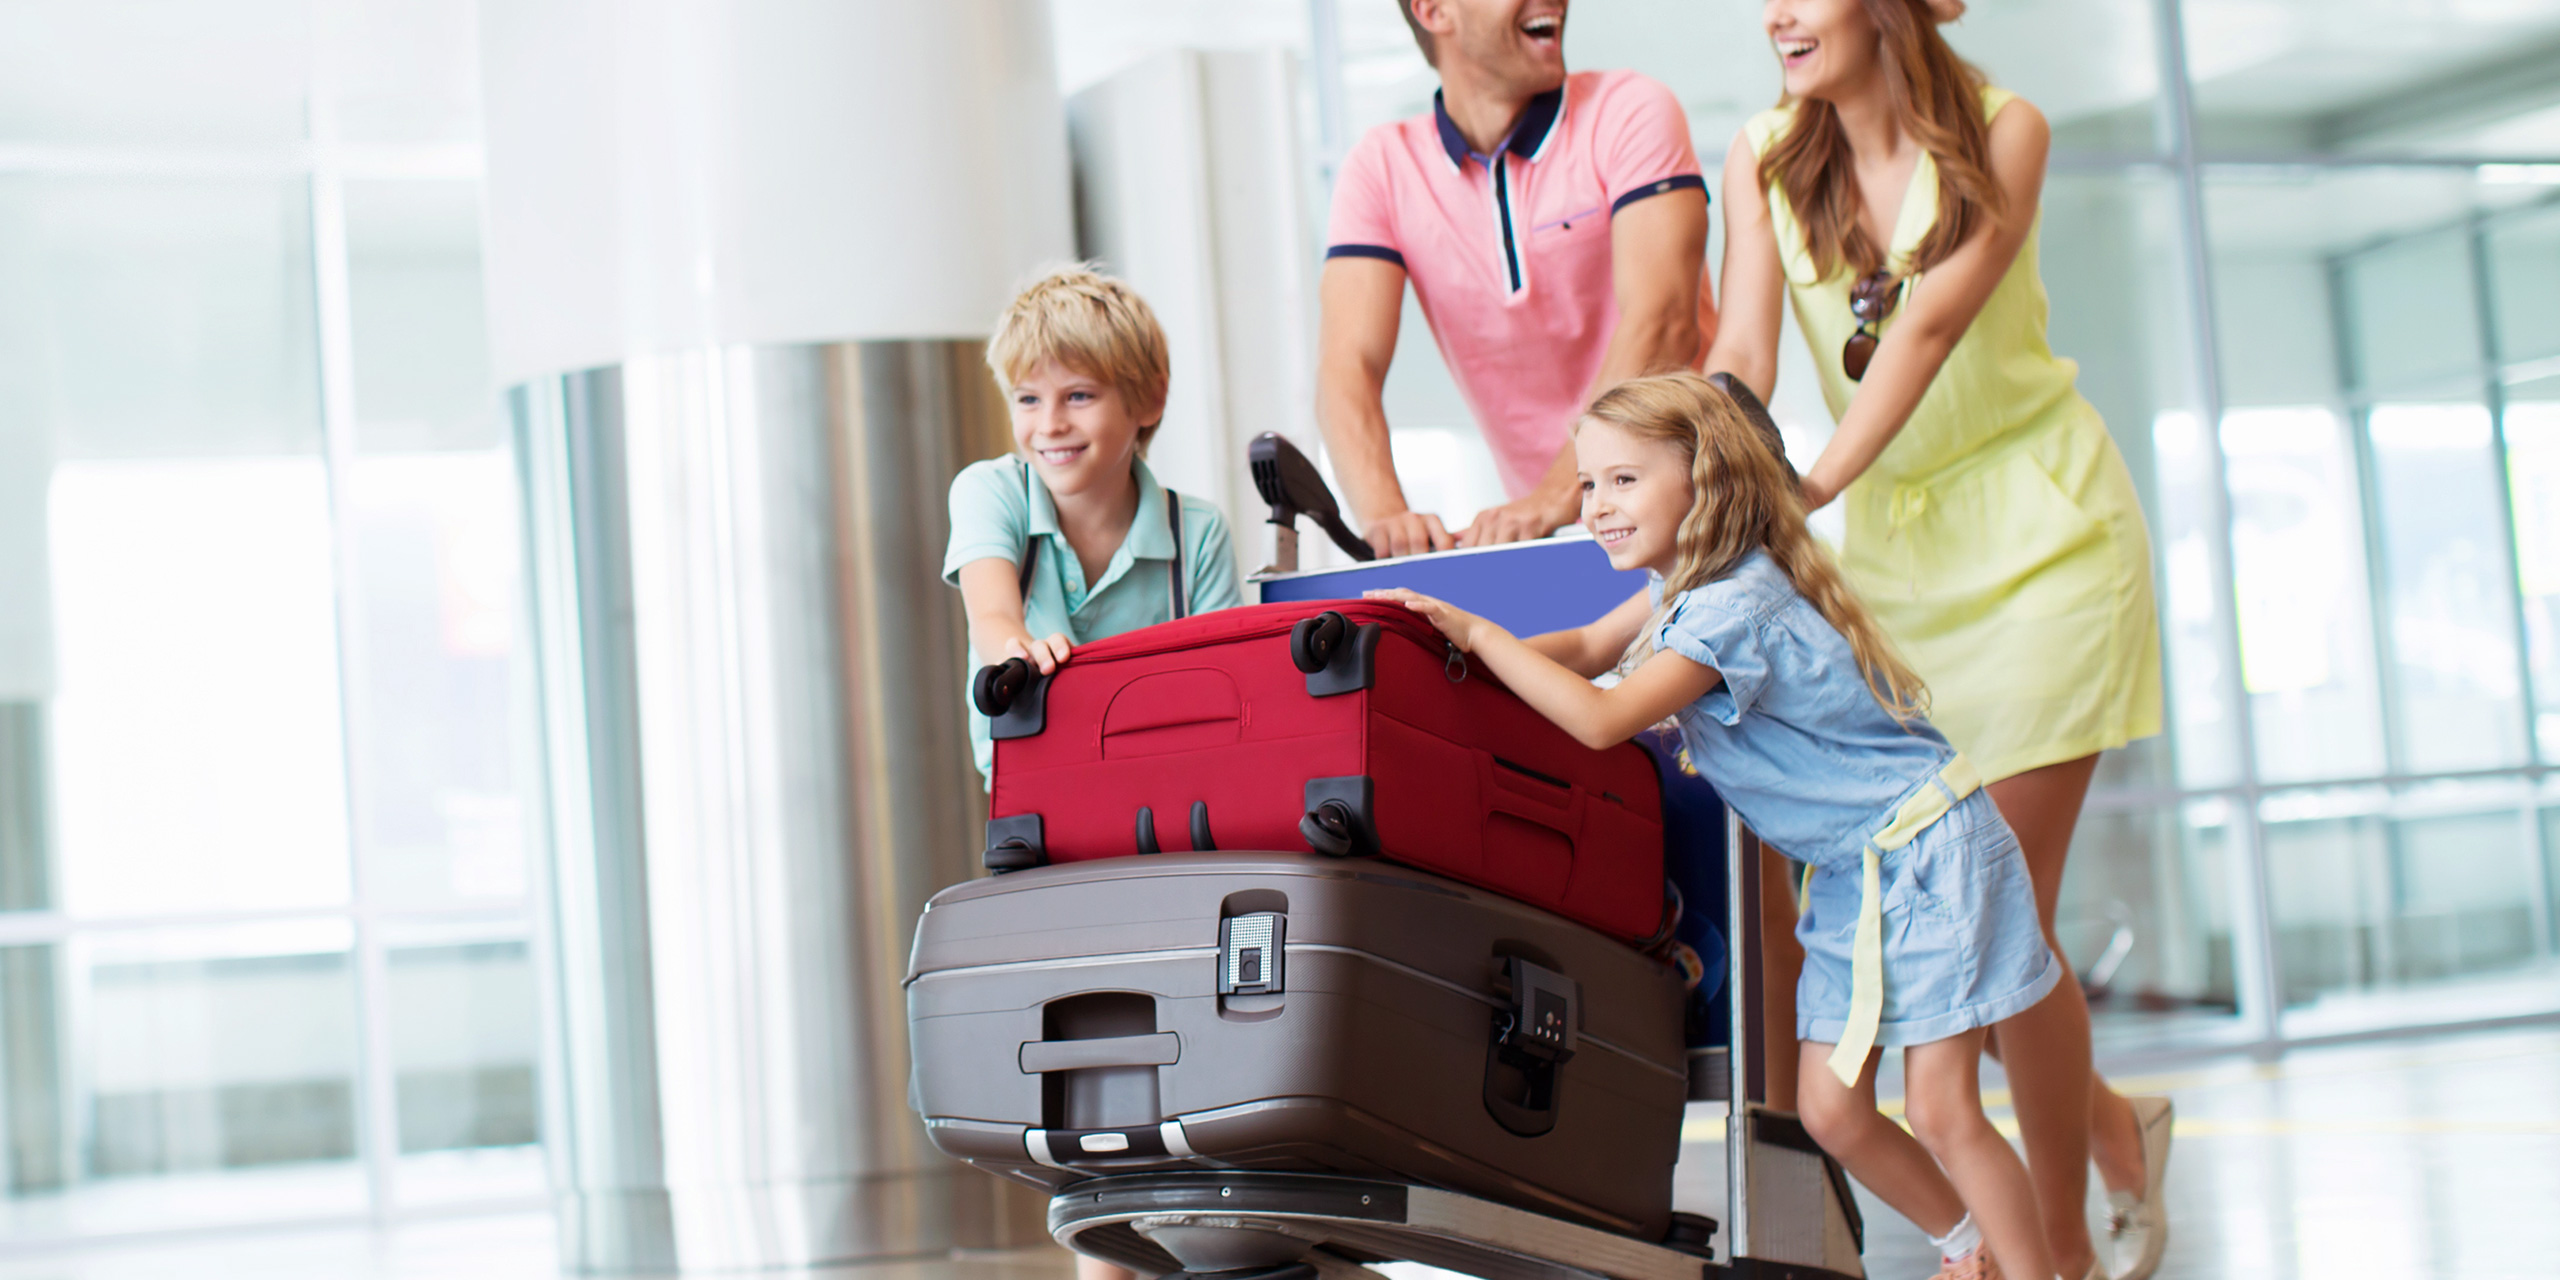 Family wheeling large suitcases in airport; Courtesy of AboutLife/Shutterstock